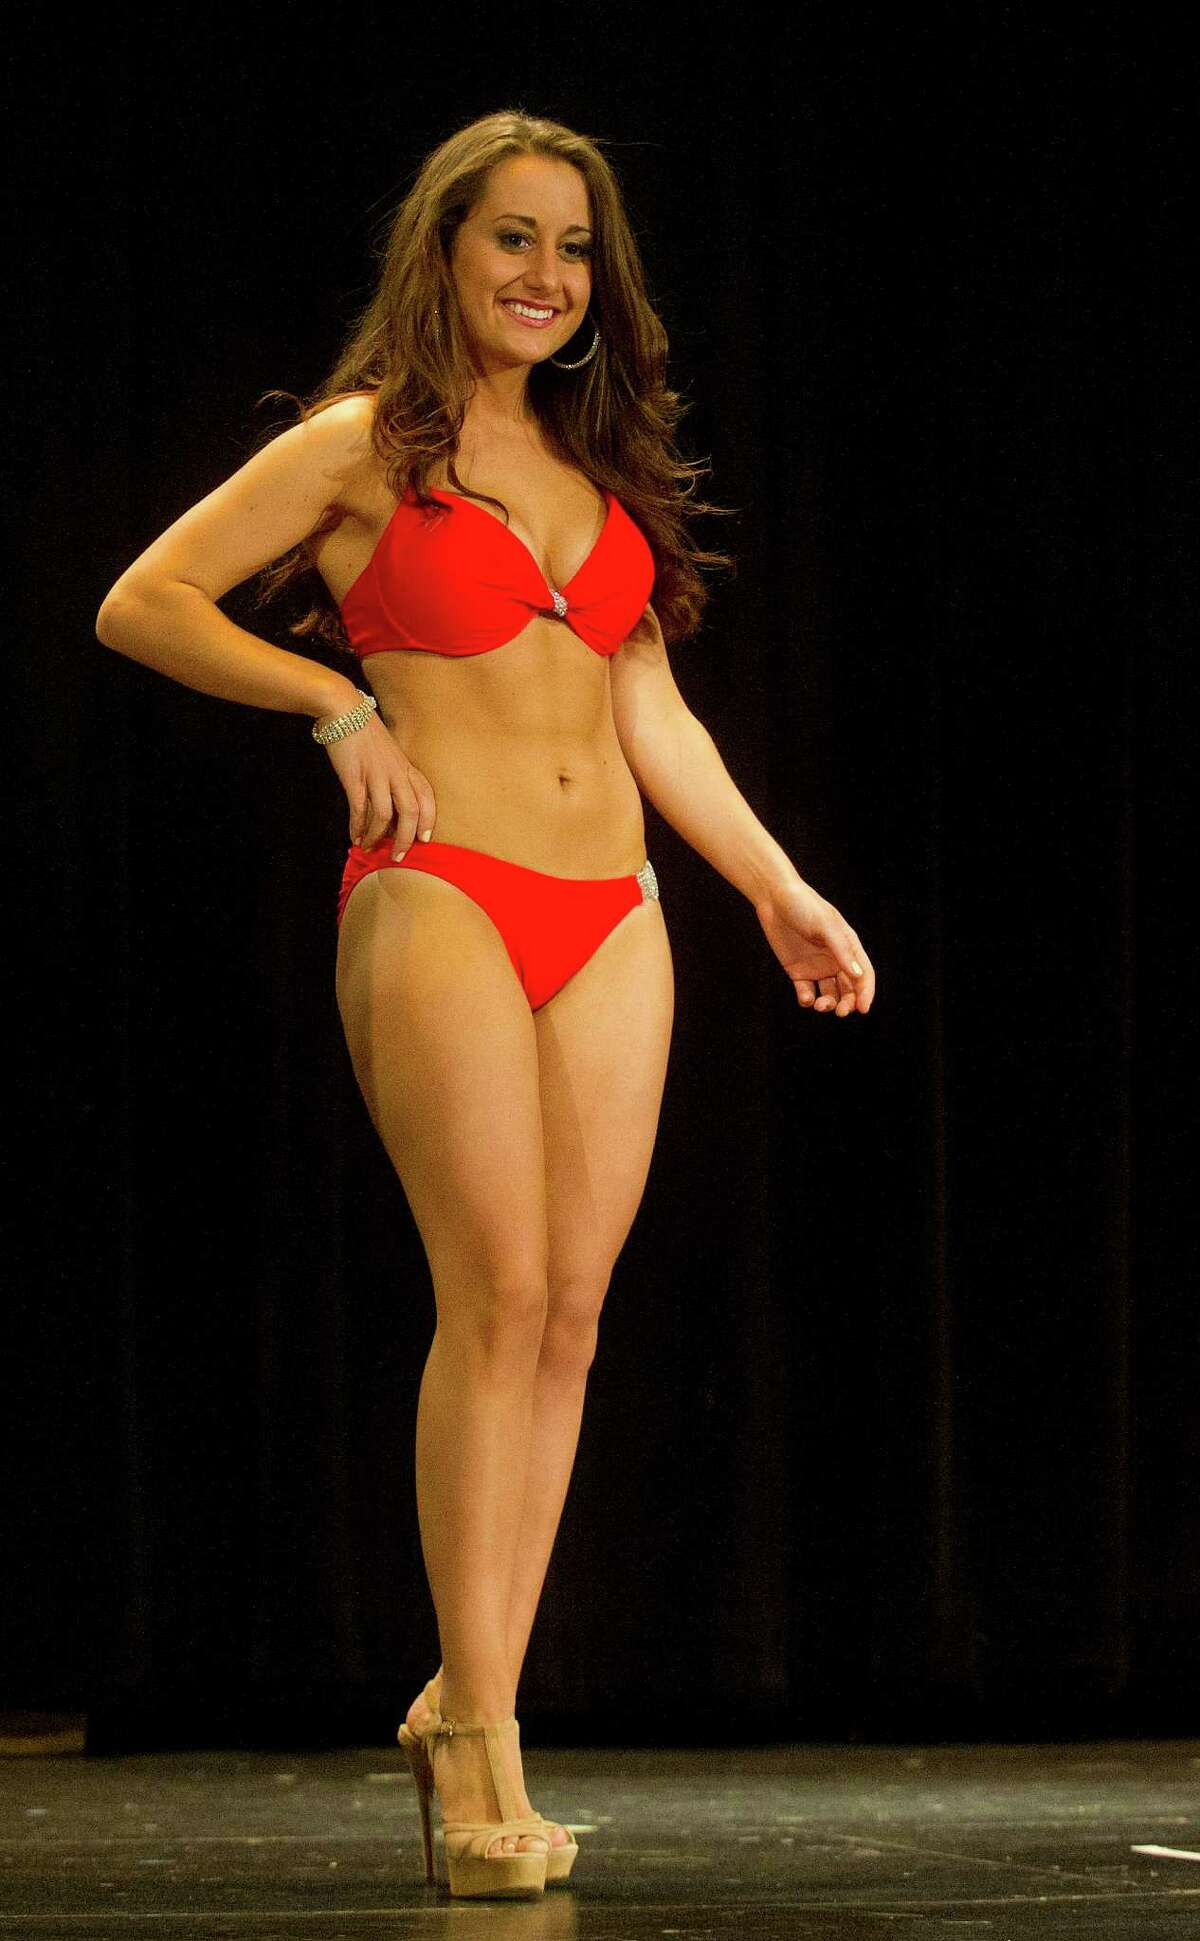 Natascia Simone, 20, competes in the lifestyle and fitness portion during the first Miss Stamford competition at the Rogers International School in Stamford, Conn., on January 11, 2014.